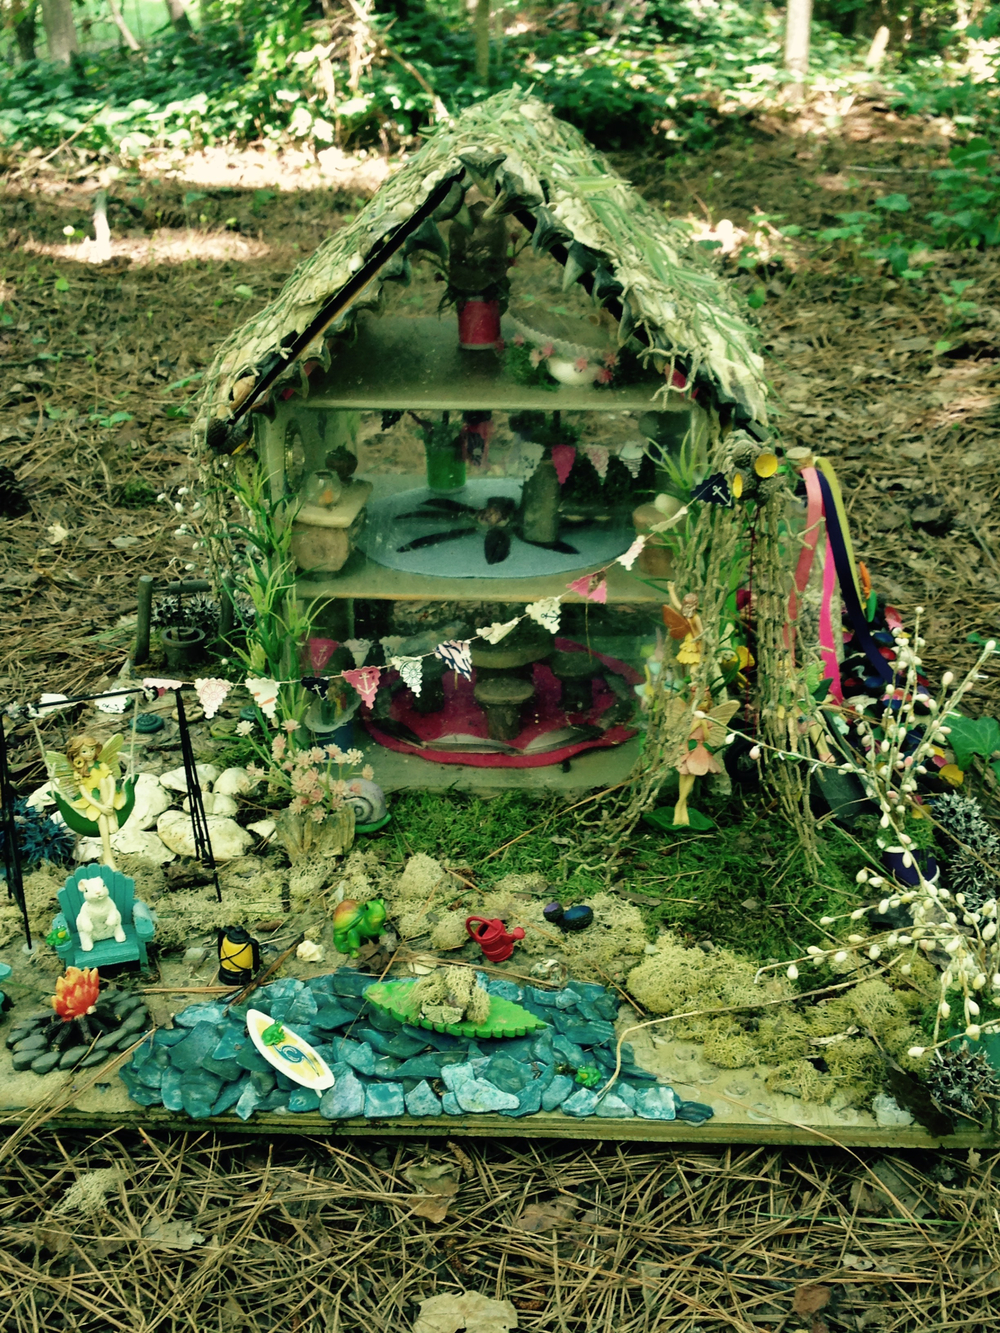 No, you do not have to build fairy houses together. But you could visit them. Or build them if that's your fun.